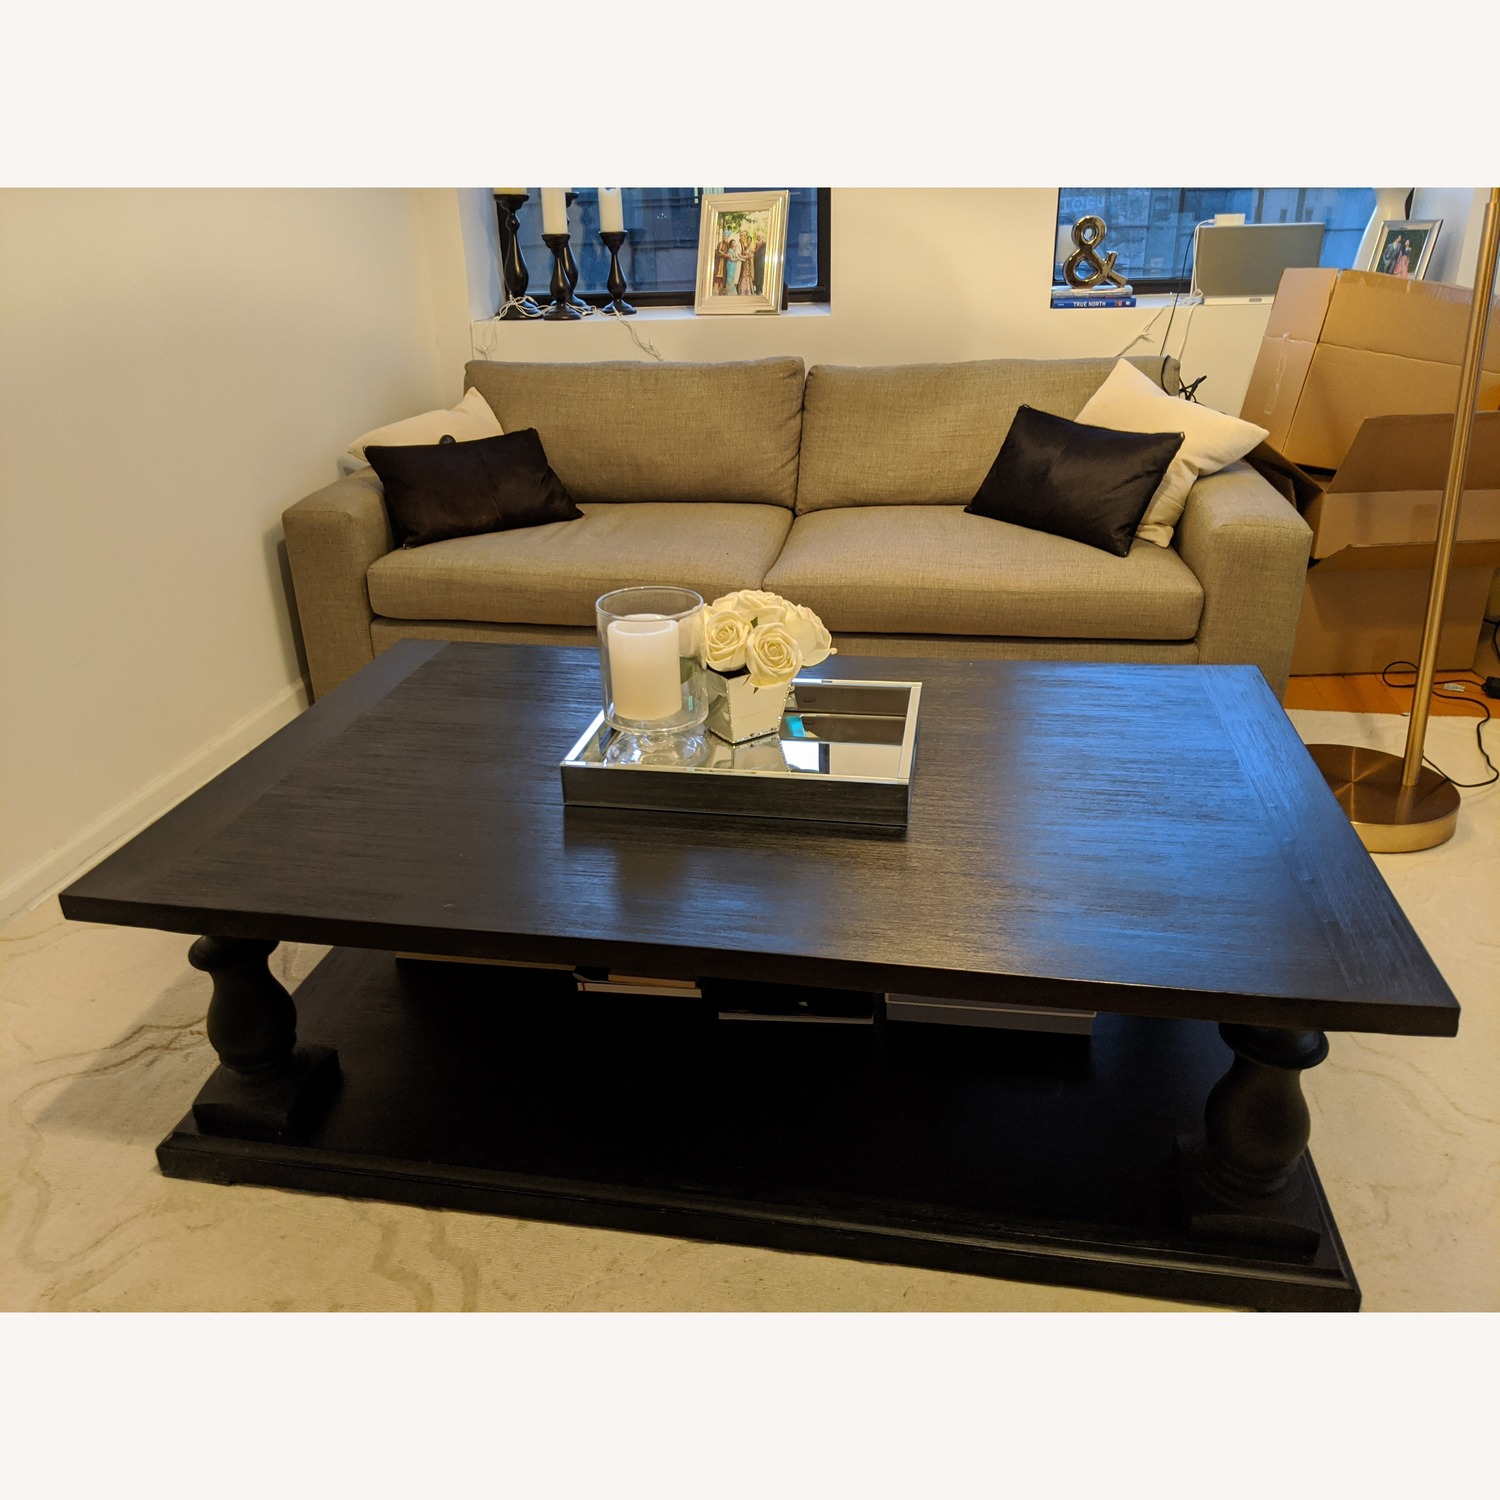 Restoration Hardware Dark Brown Coffee Table - image-5